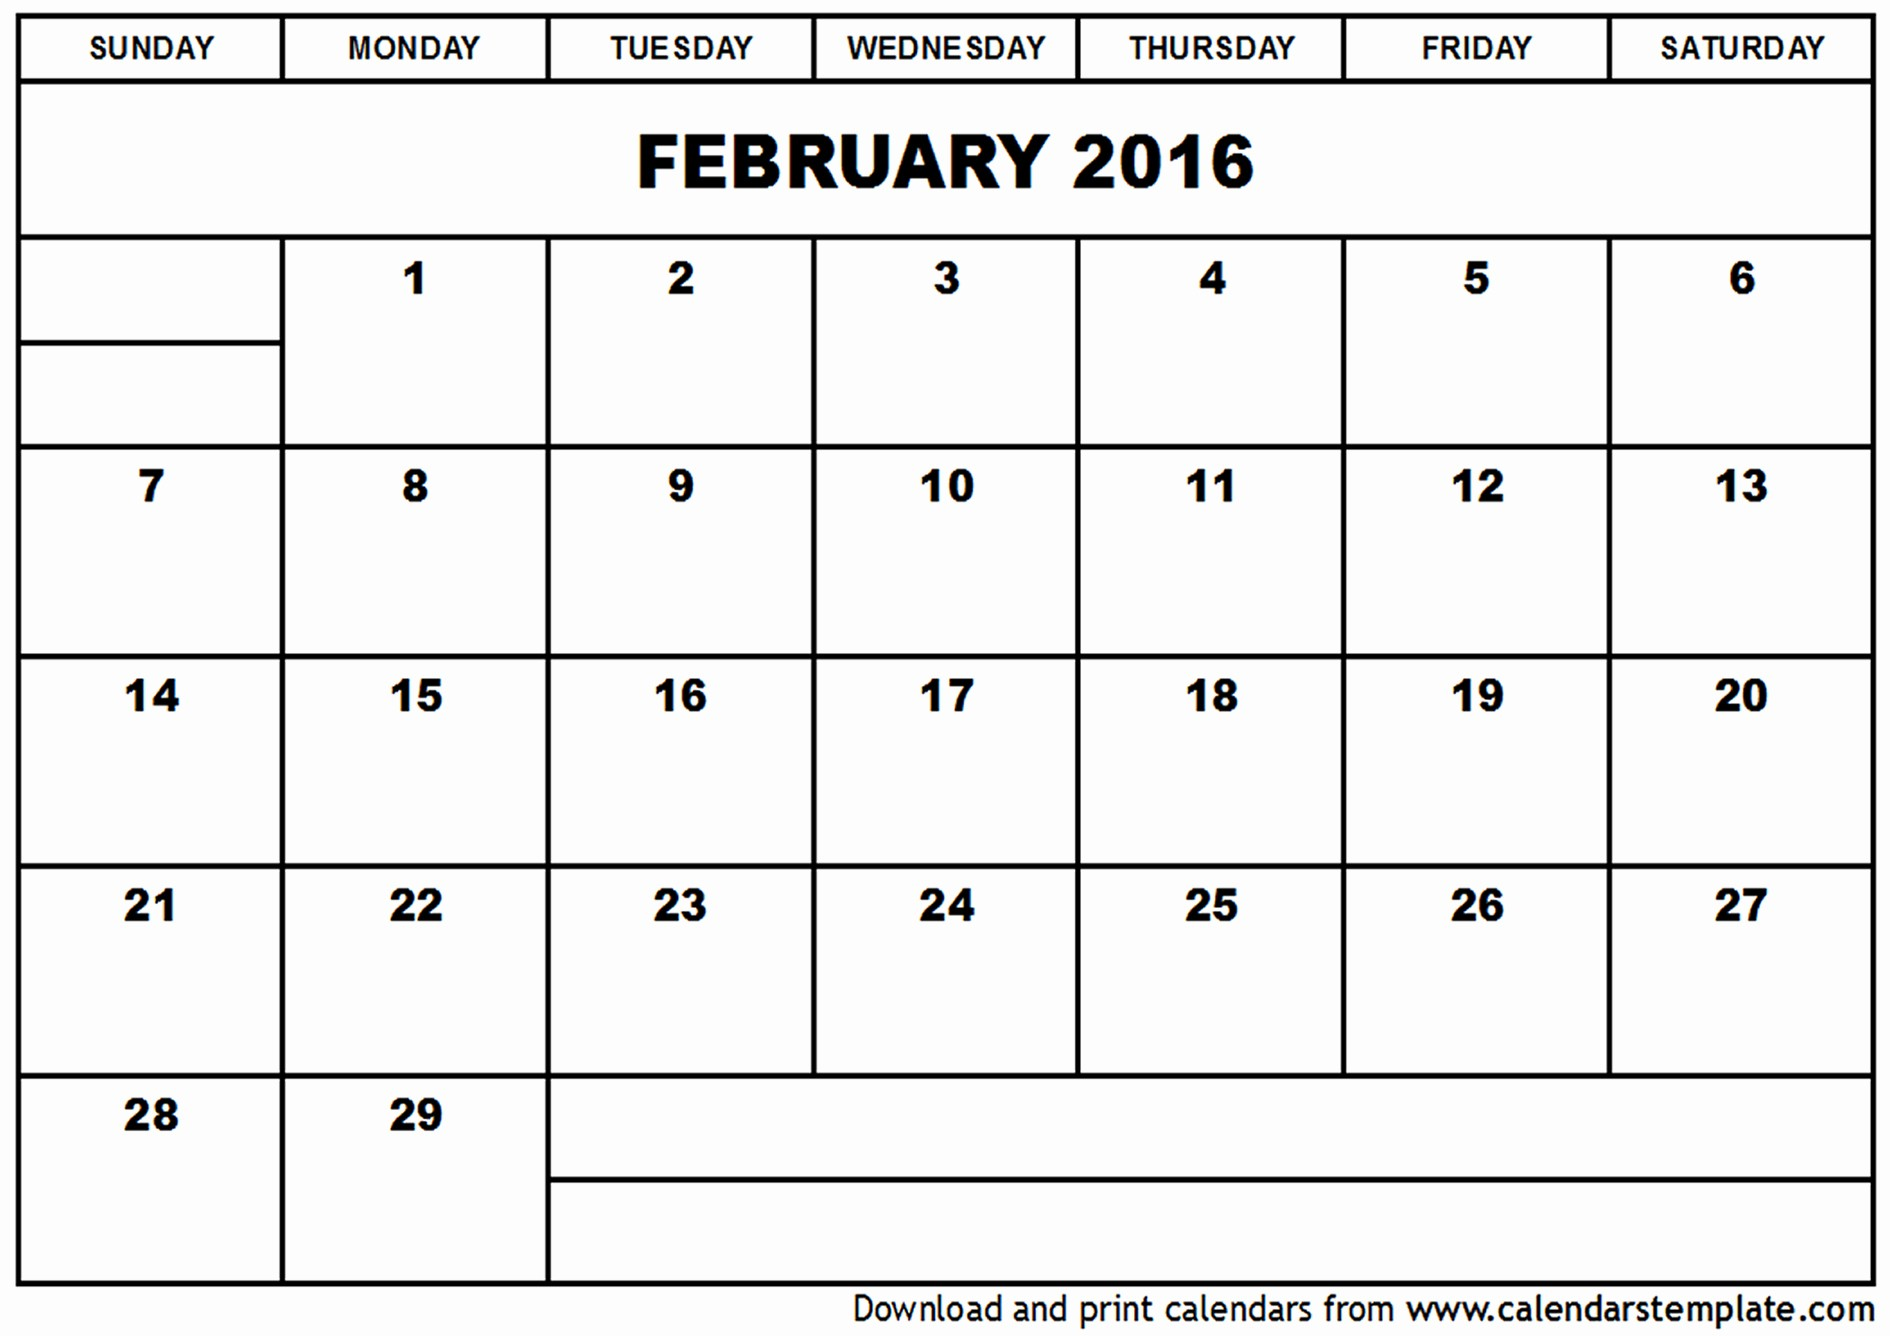 Free Printable Calendars 2016 Templates Lovely February 2016 Calendar Template